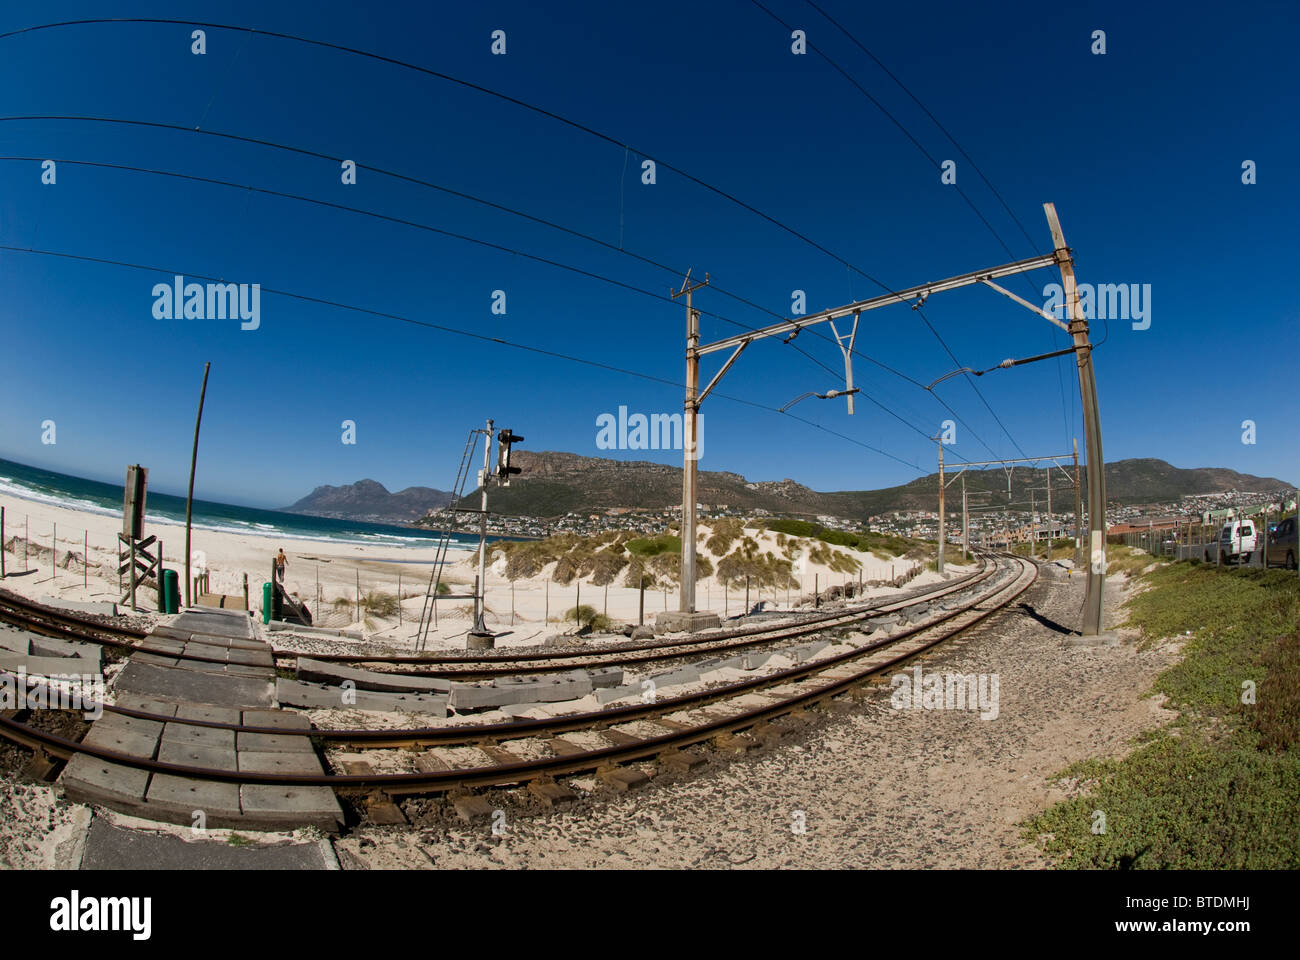 Fish-eye view of railway tracks running past Fish Hoek beach and a view of Table mountain in the background - Stock Image